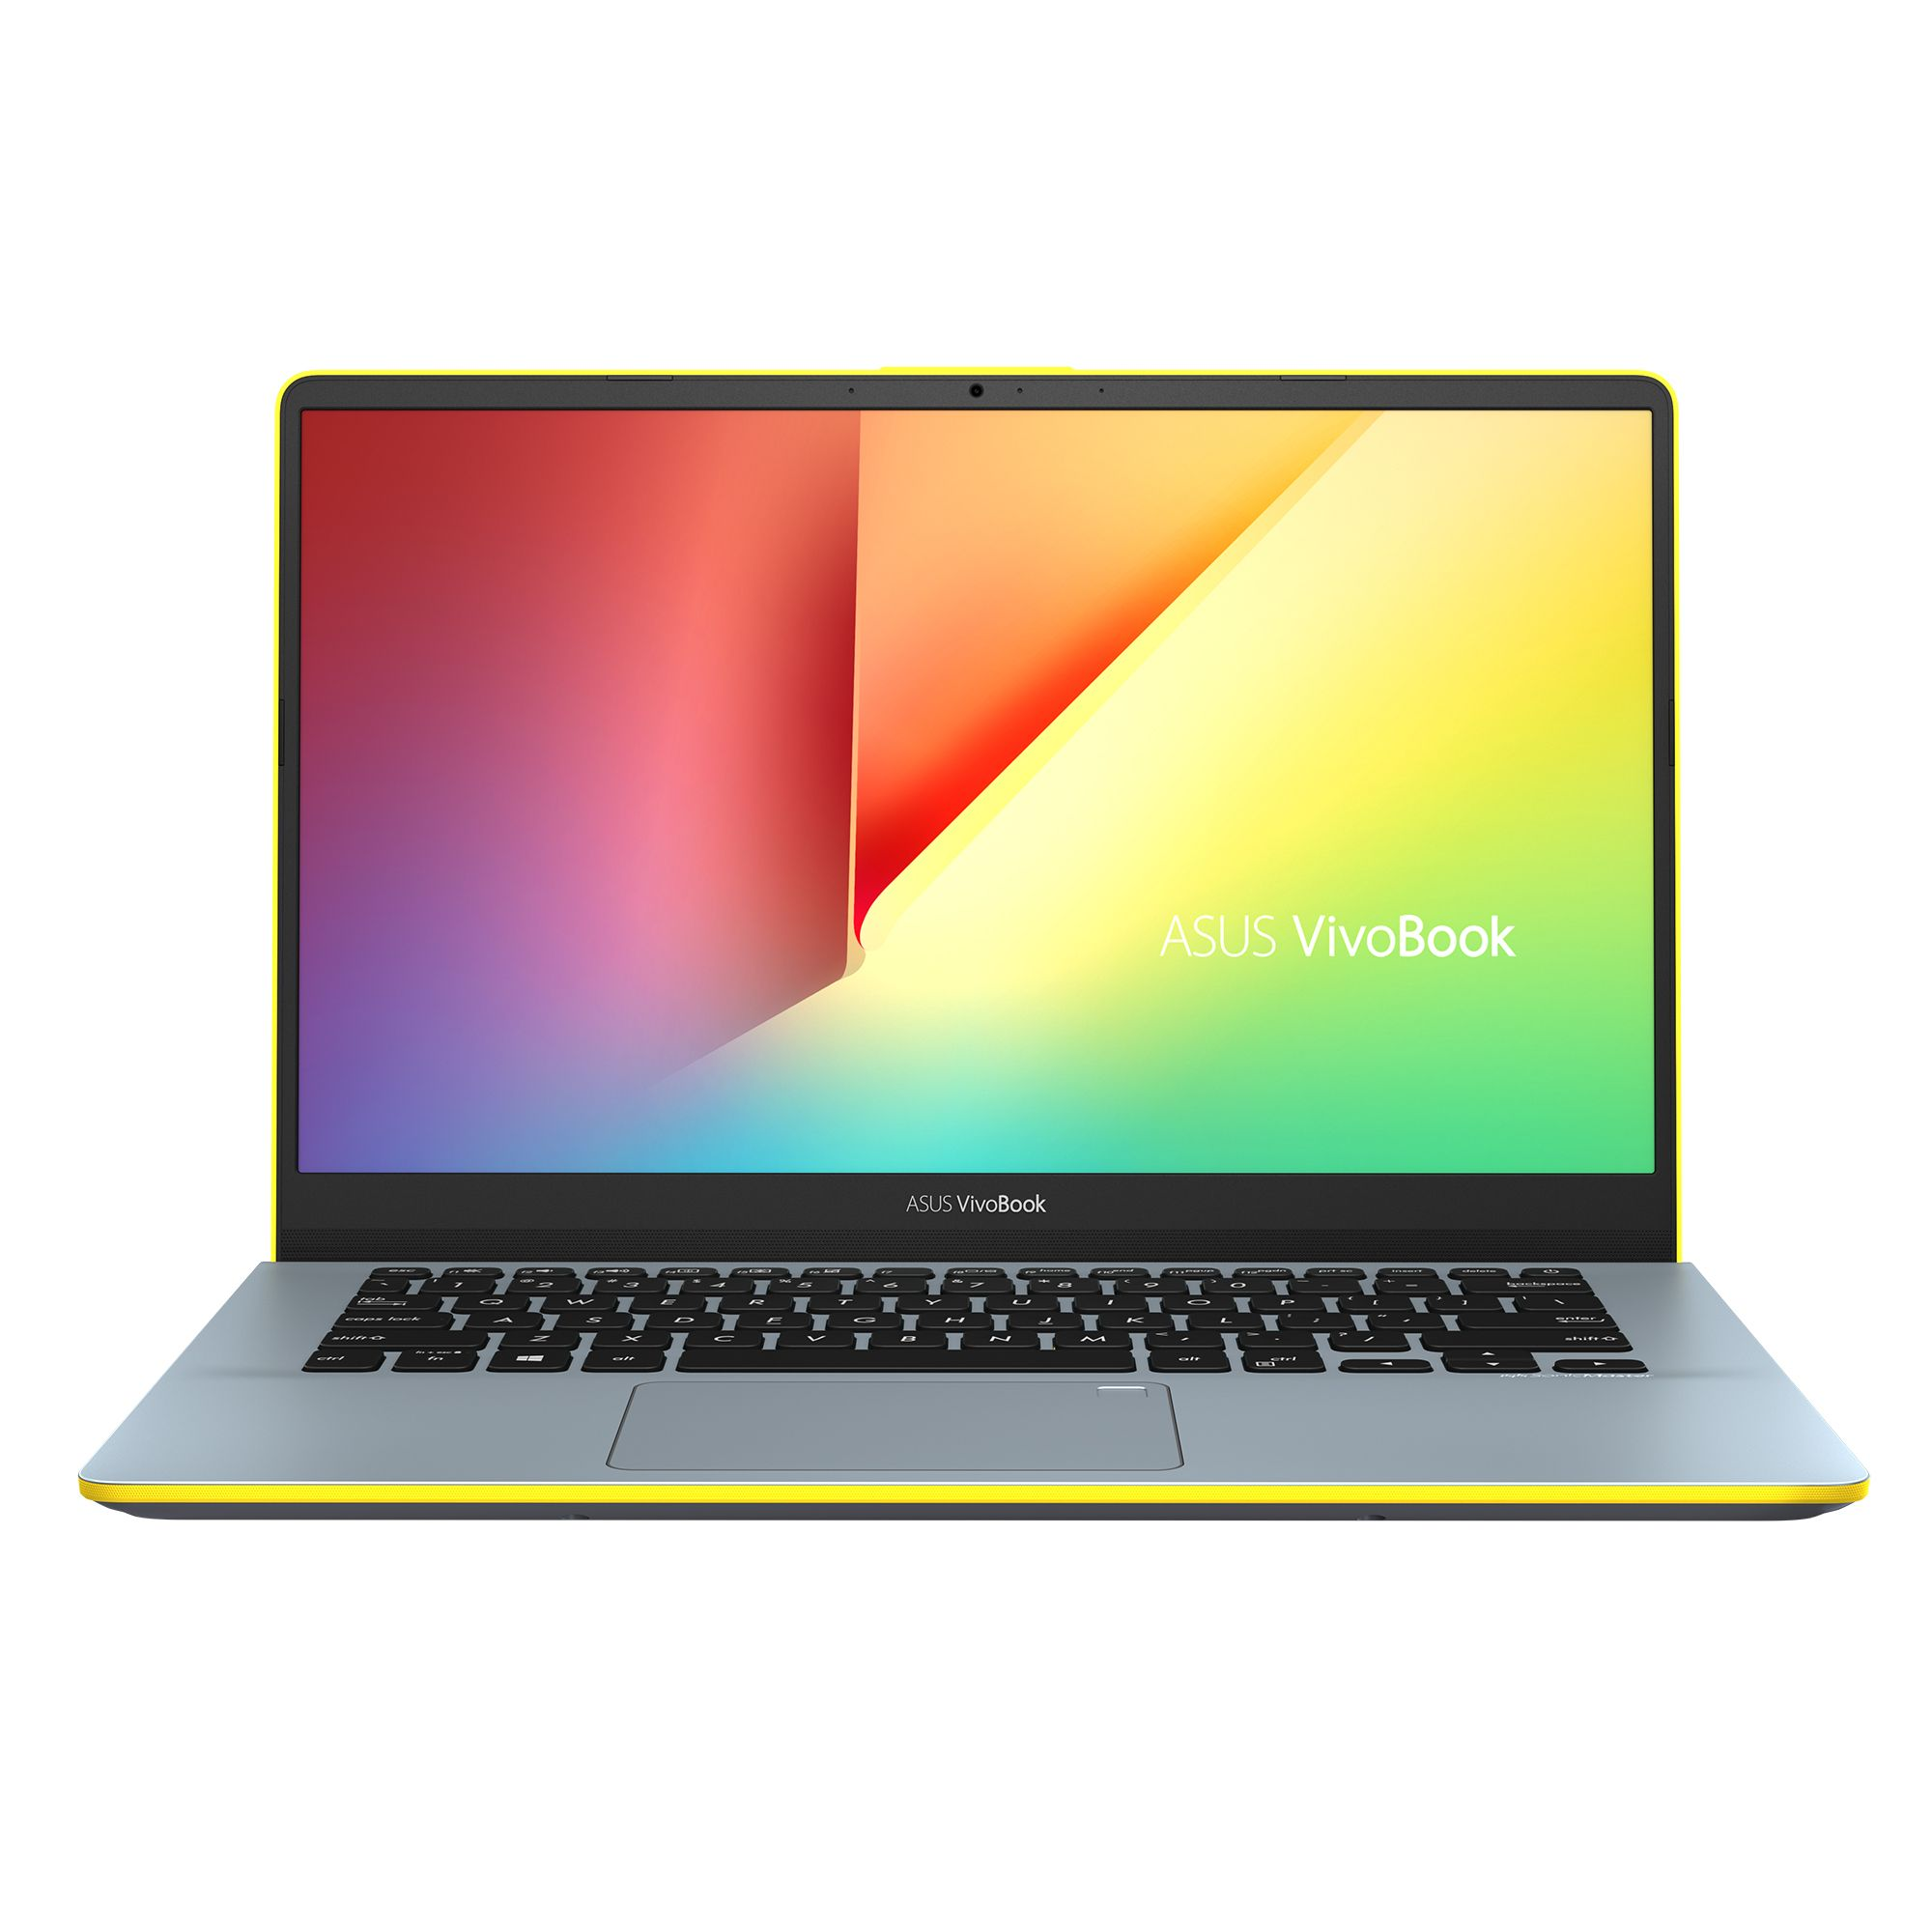 Notebook Asus VivoBook S430FA 14 Full HD Intel Core i5-8265U RAM 8GB SSD 256GB Windows 10 Argintiu